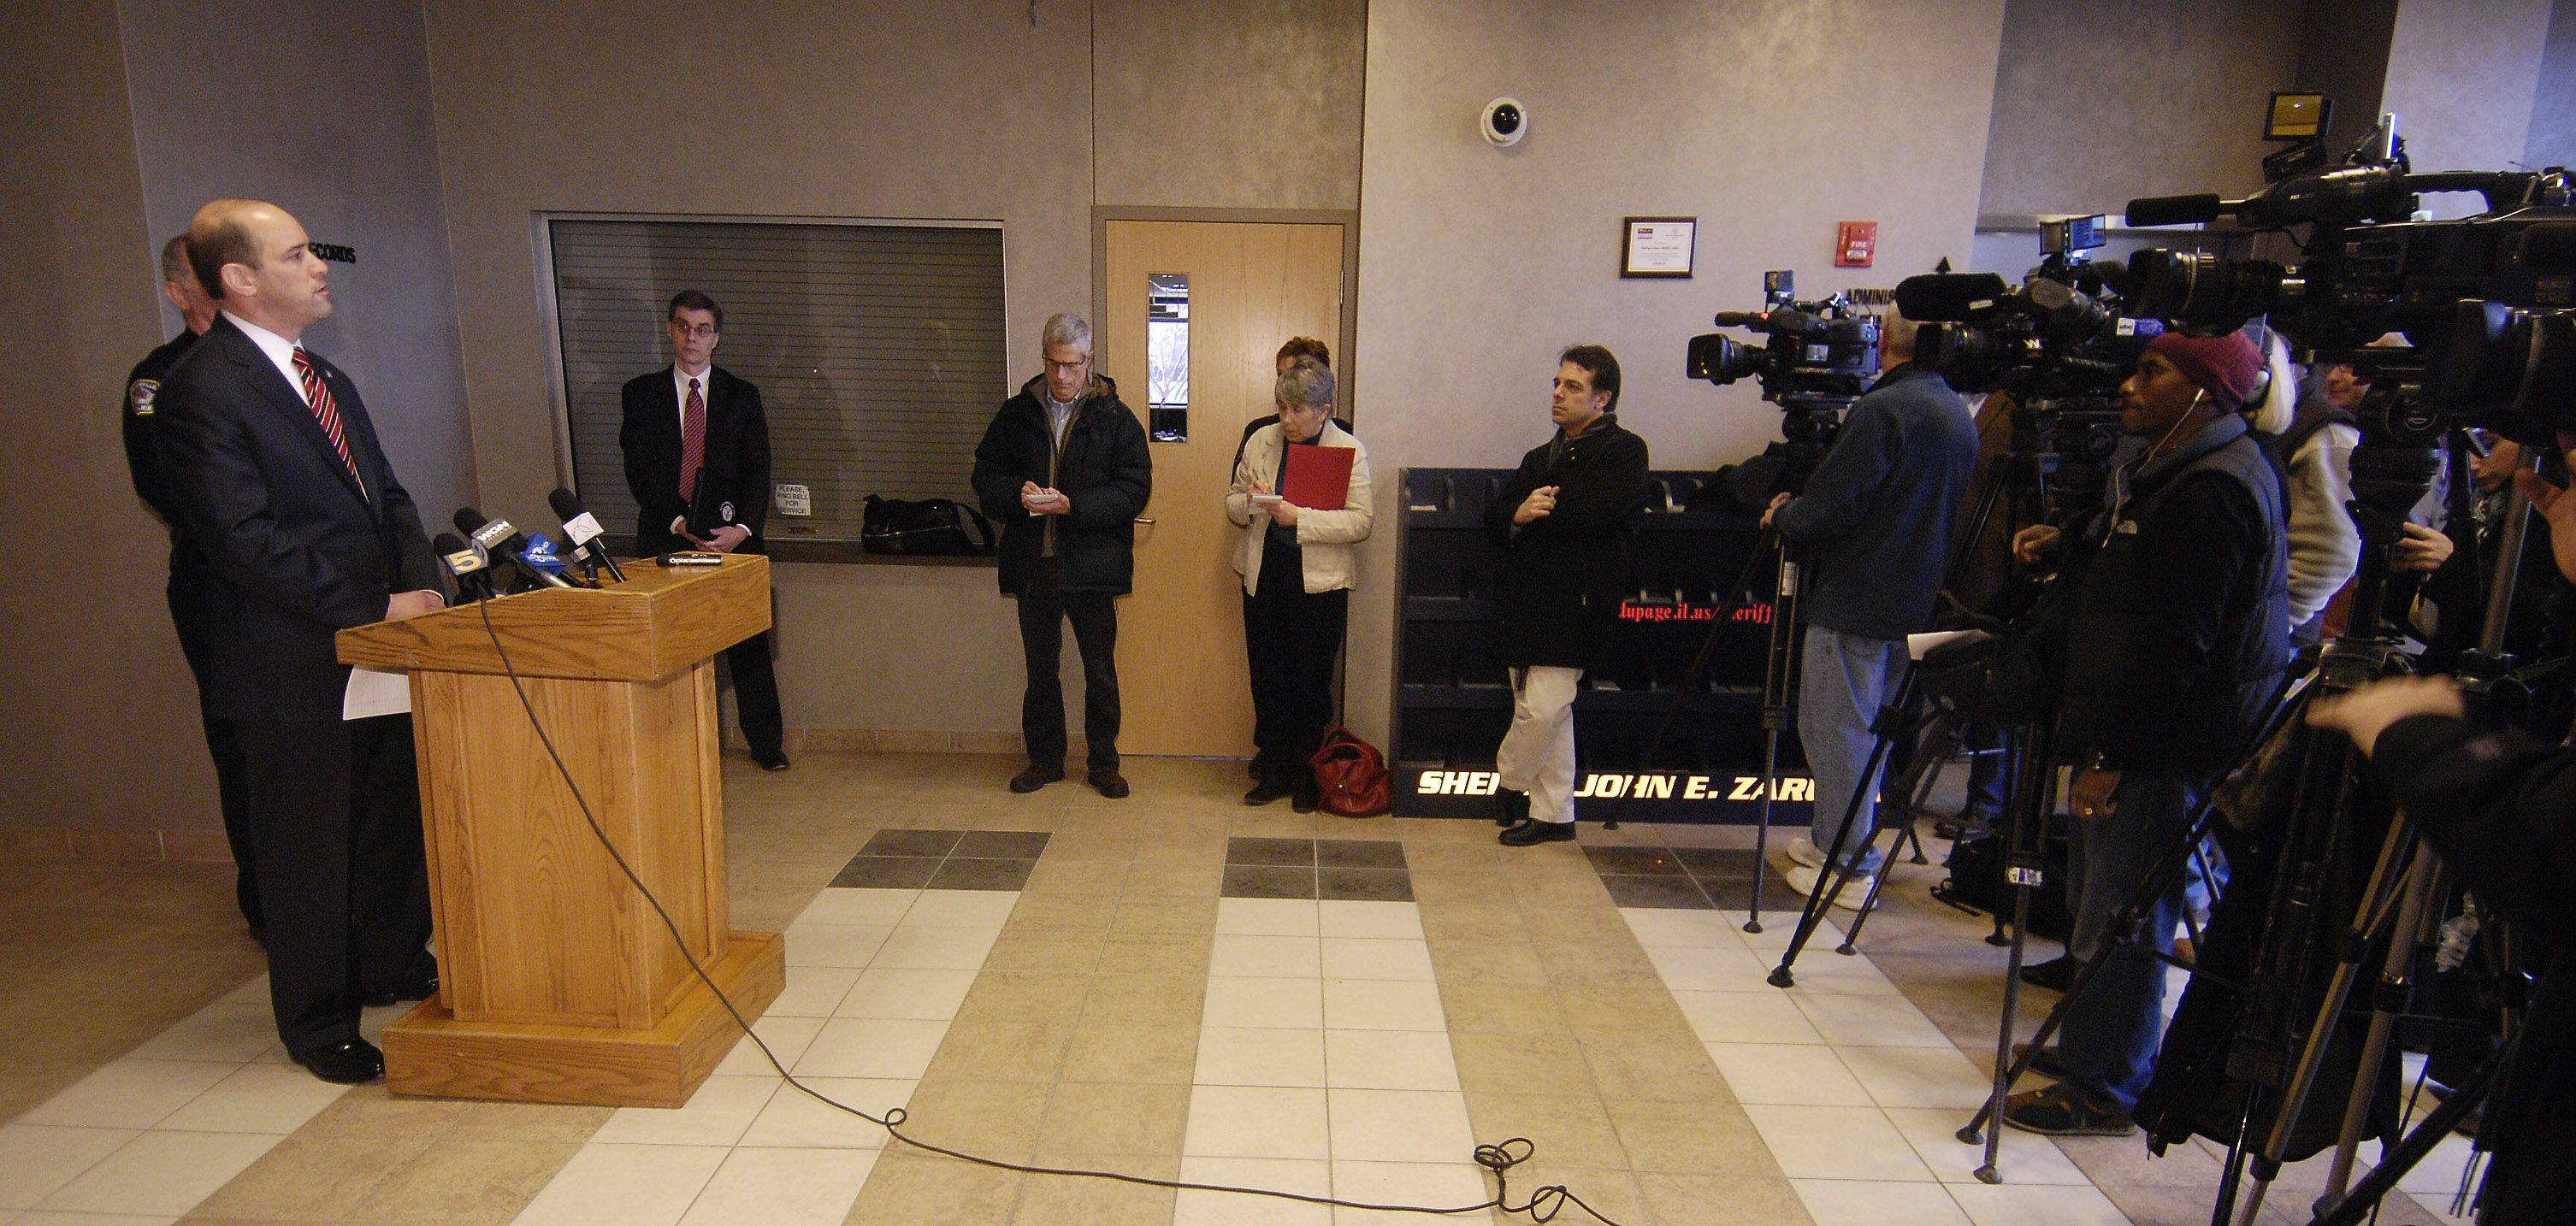 DuPage County State's Attorney Robert B. Berlin held a news conference Sunday to discuss the murder of Naperville teacher Shaun Wild. A 27-year-old Naperville man is charged with stabbing Wild to death early Saturday during a bar fight.